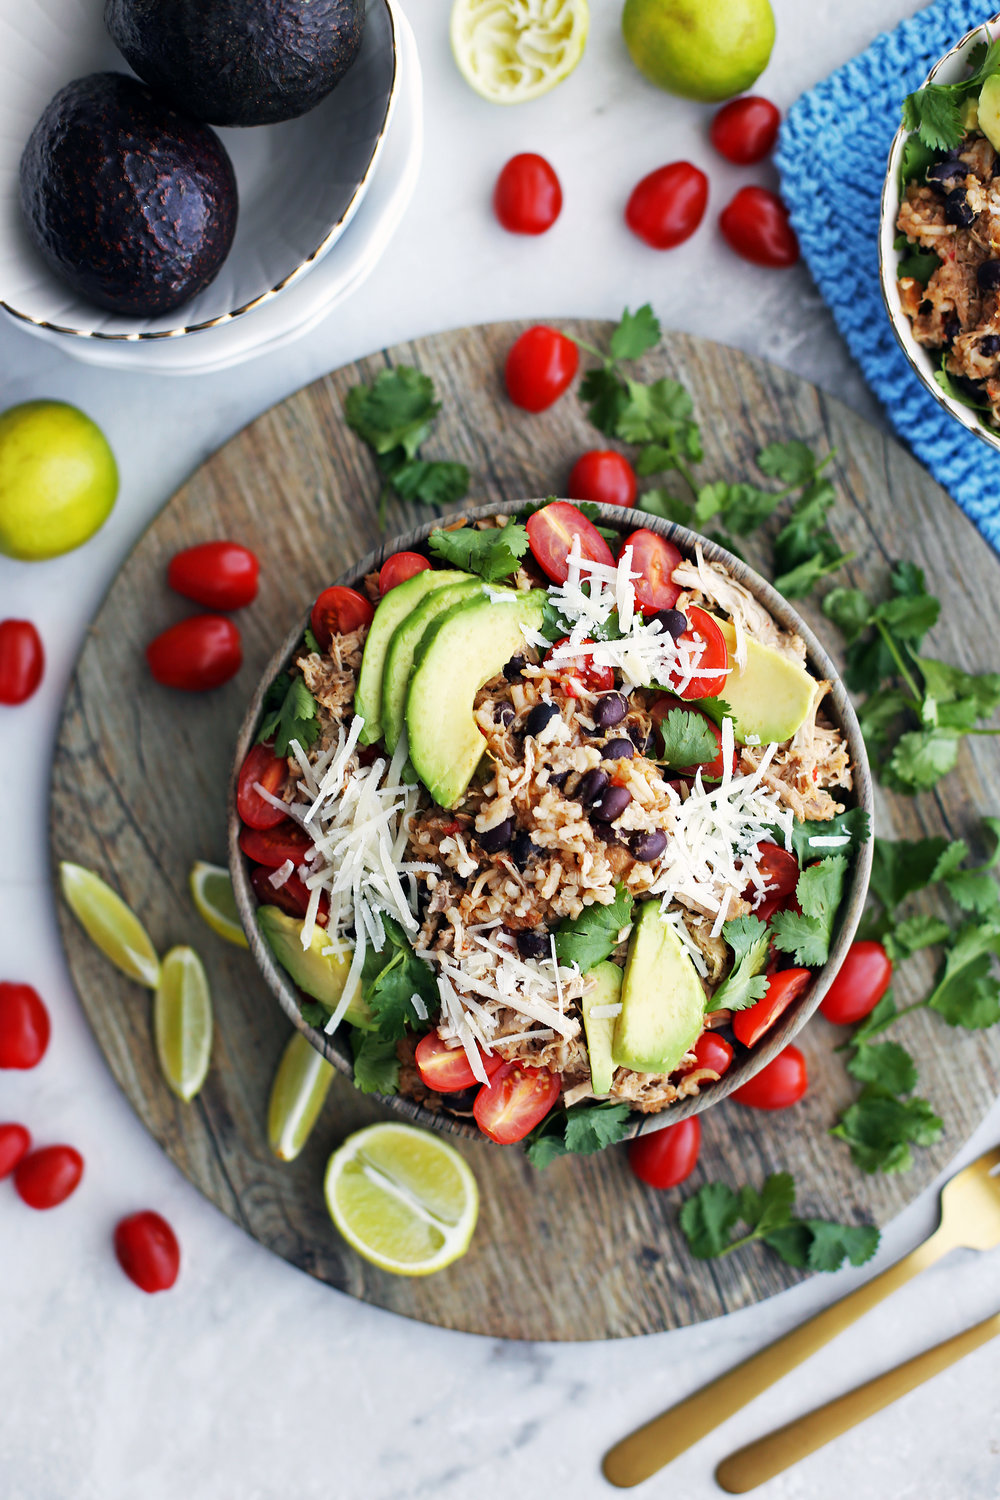 Quick and easy Instant Pot Chicken and Rice Burrito Bowls topped with tomatoes, avocado, cheese, and cilantro.